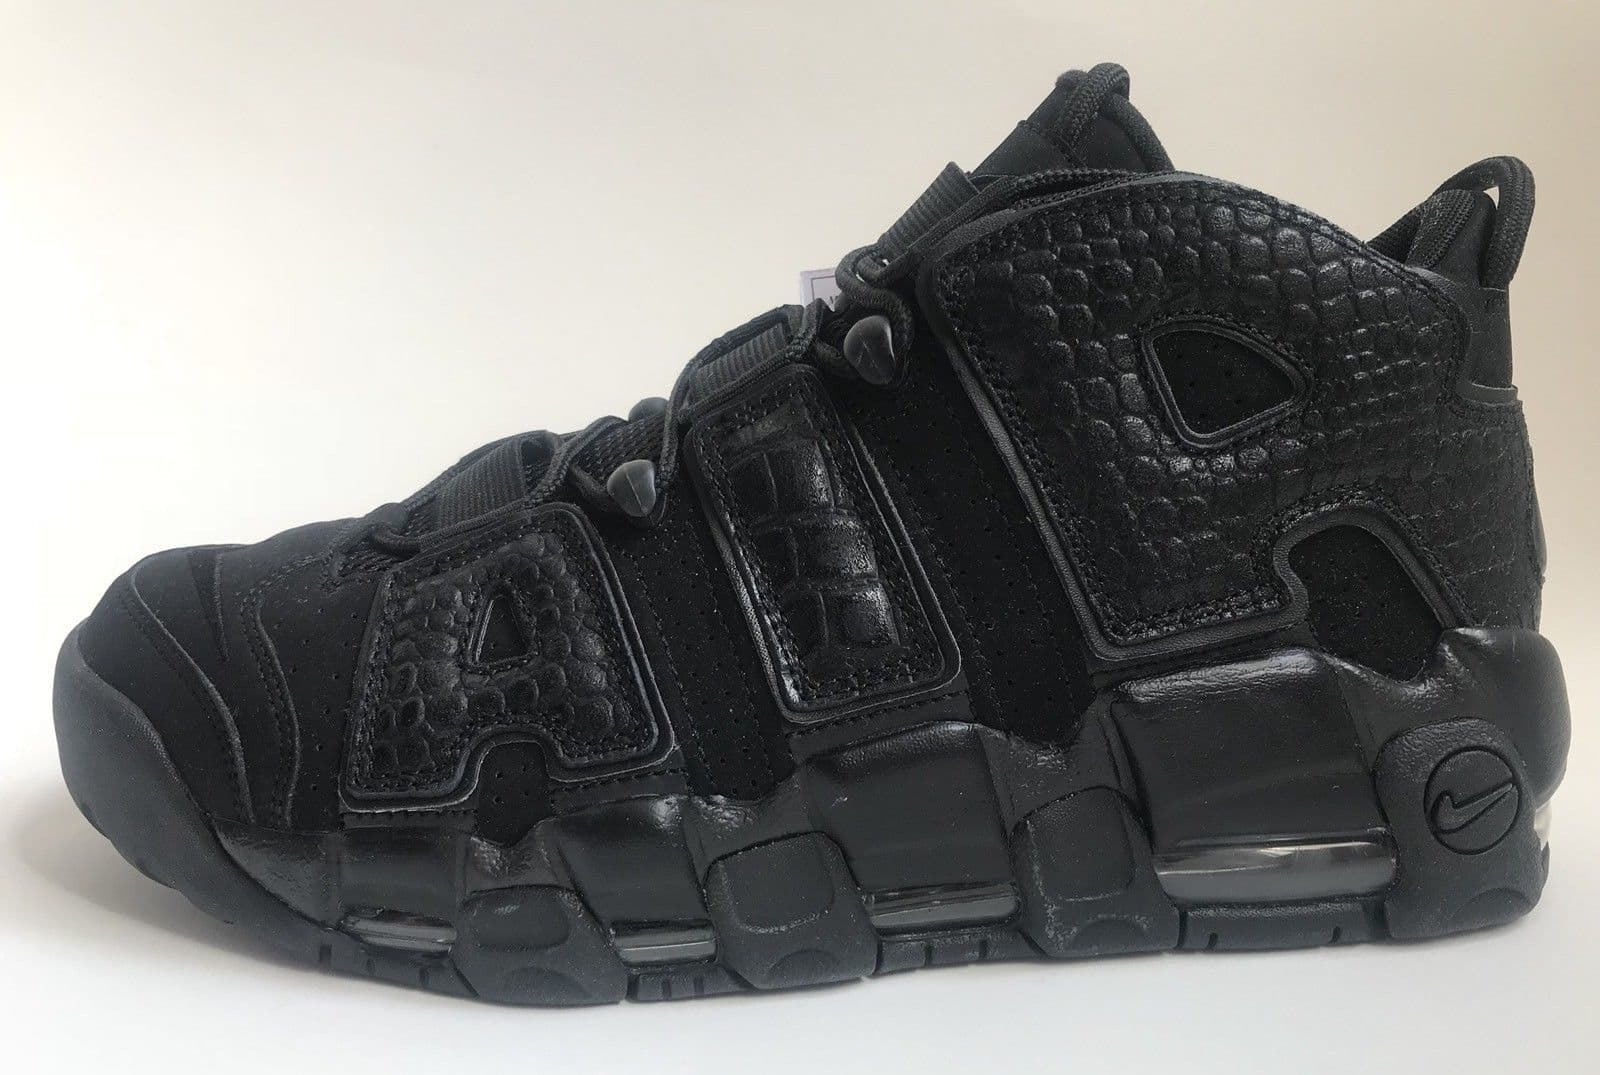 Nike Air More Uptempo 'Croc' Sample (Left Lateral)